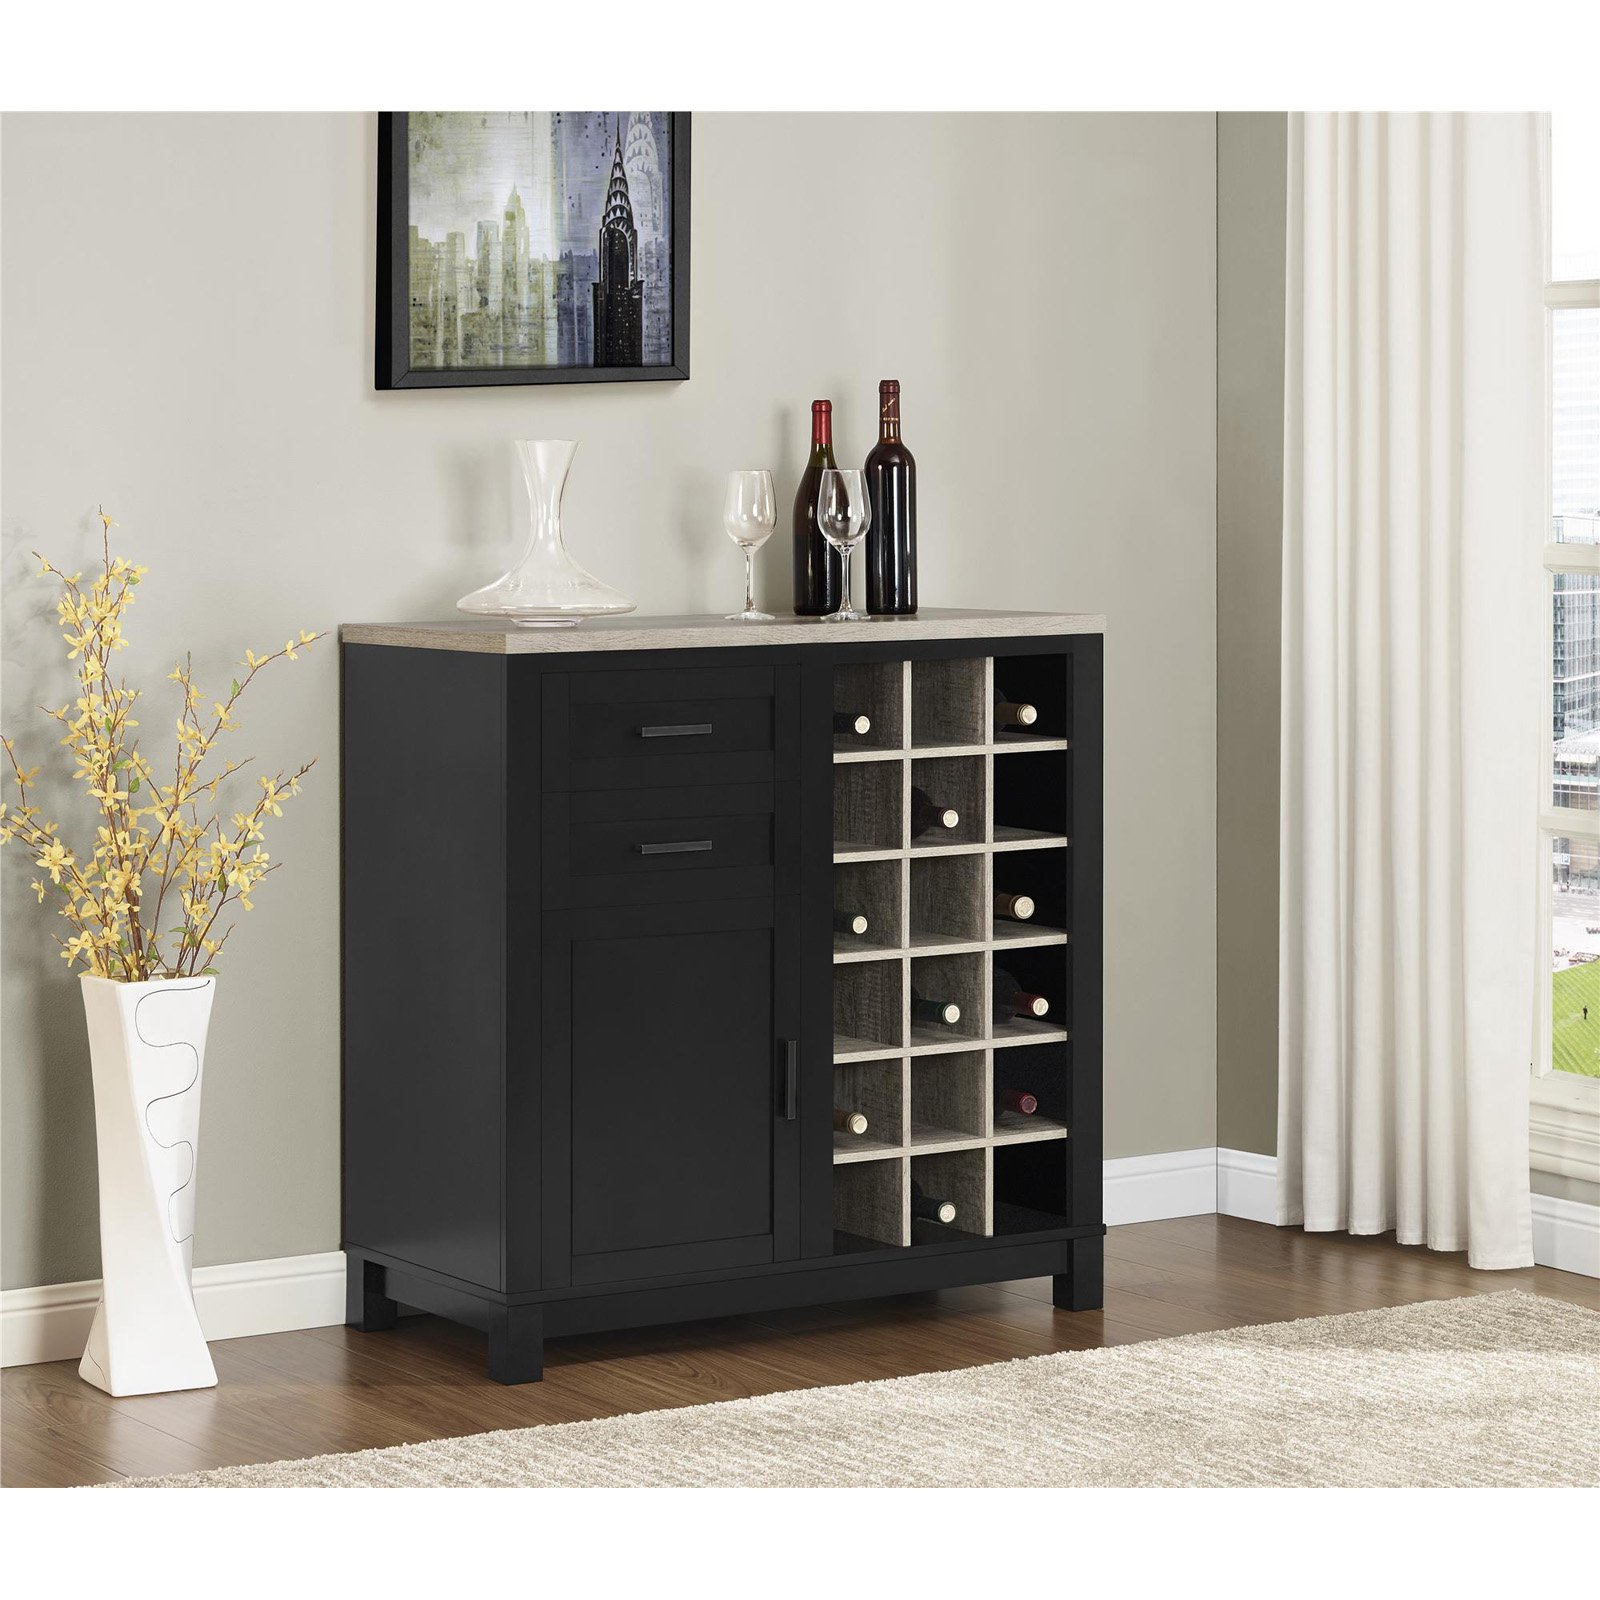 Altra Furniture Carver Bar Cabinet